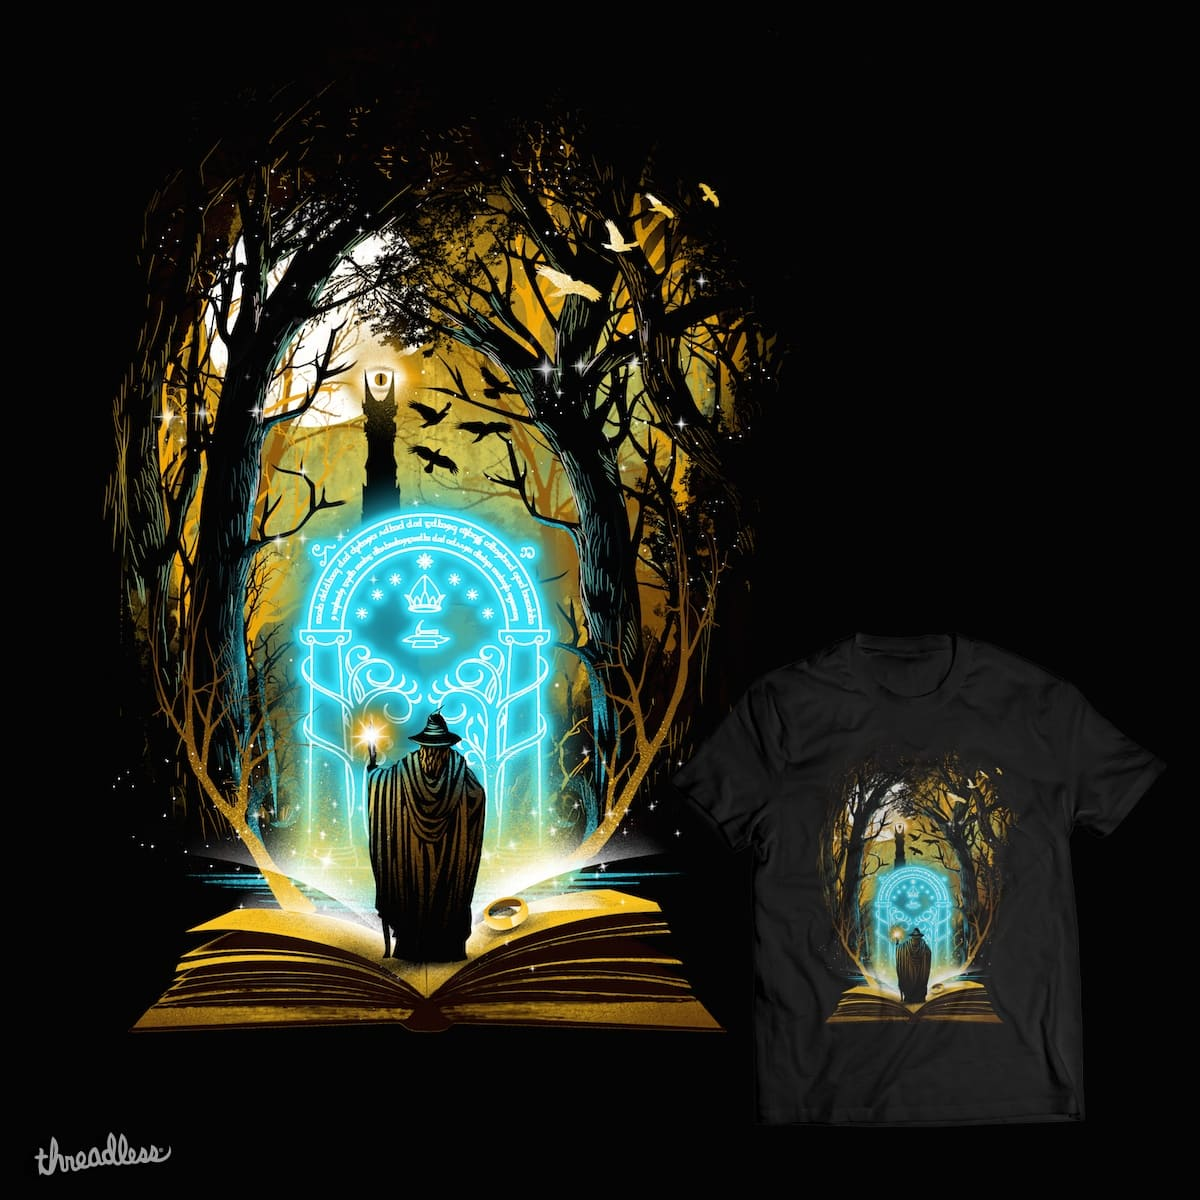 Book of Magic and Adventures by dandingeroz on Threadless